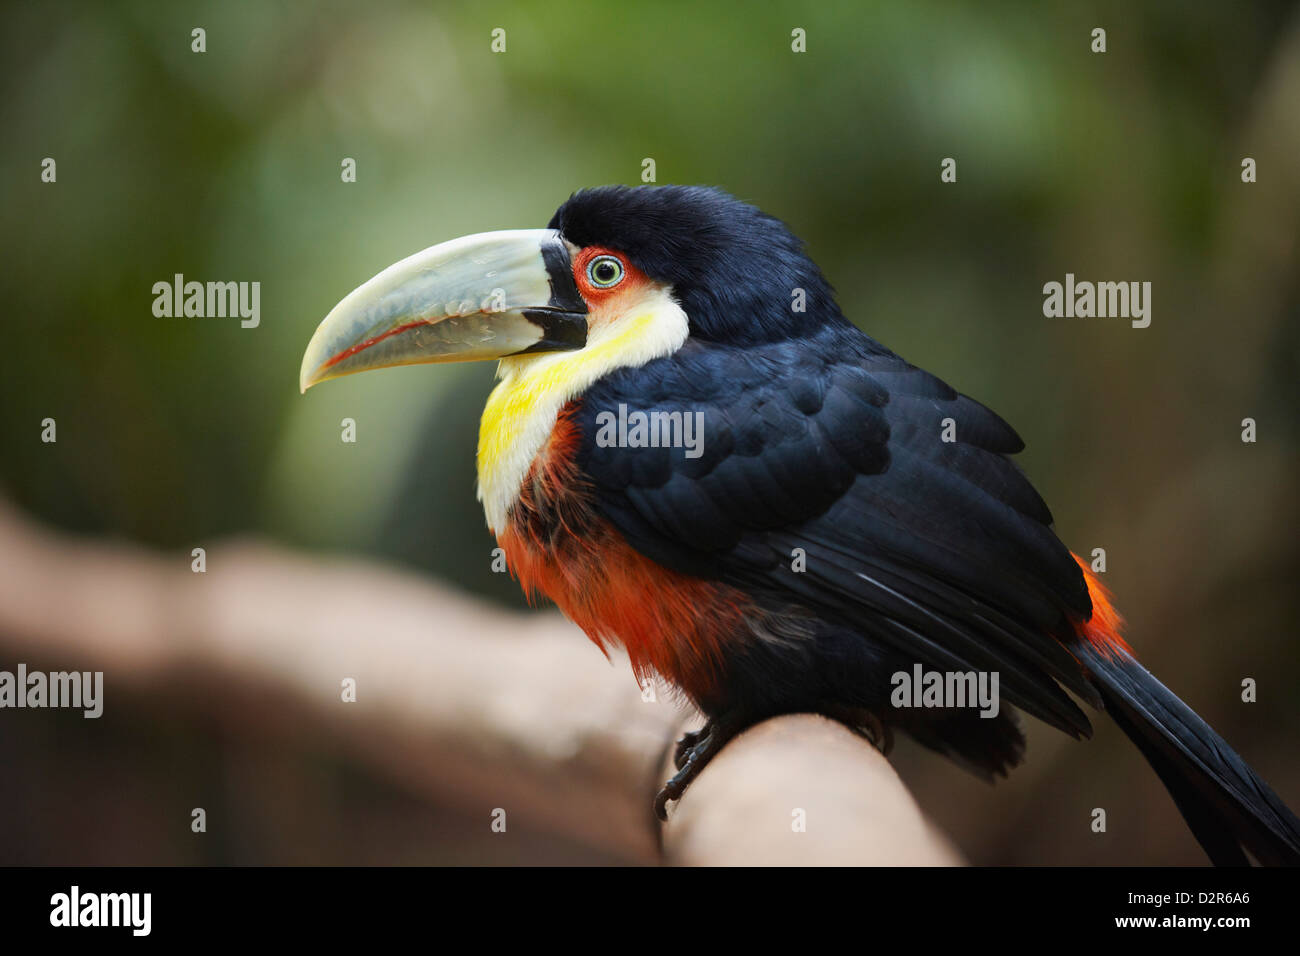 Red-breasted toucan at Parque das Aves (Bird Park), Iguacu, Parana, Brazil, South America - Stock Image